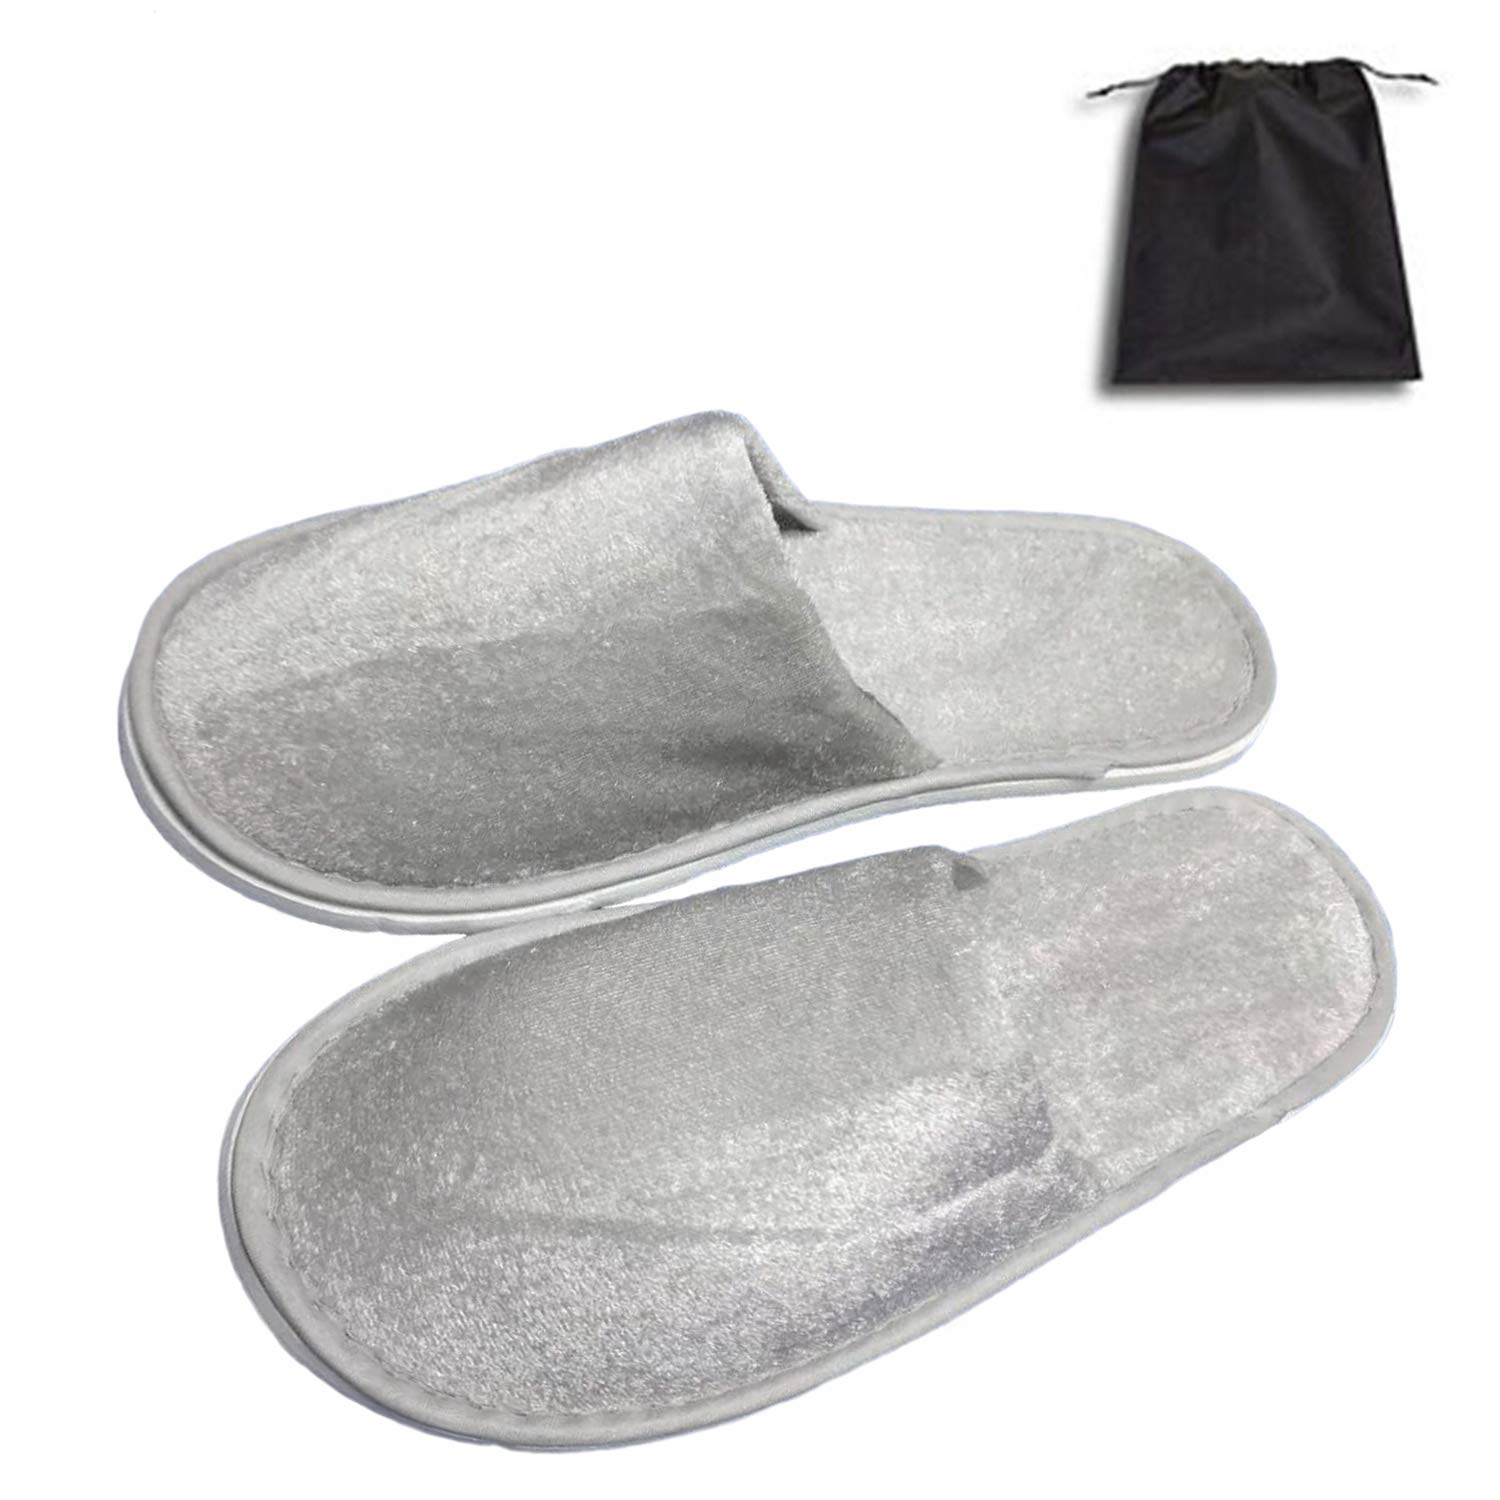 5 Pair of Close Toe Breathable Slippers, Spa Slippers for Guests, Hotel, Travel, Unisex Universal Size Washable and Non-Disposable by Tee-Mo